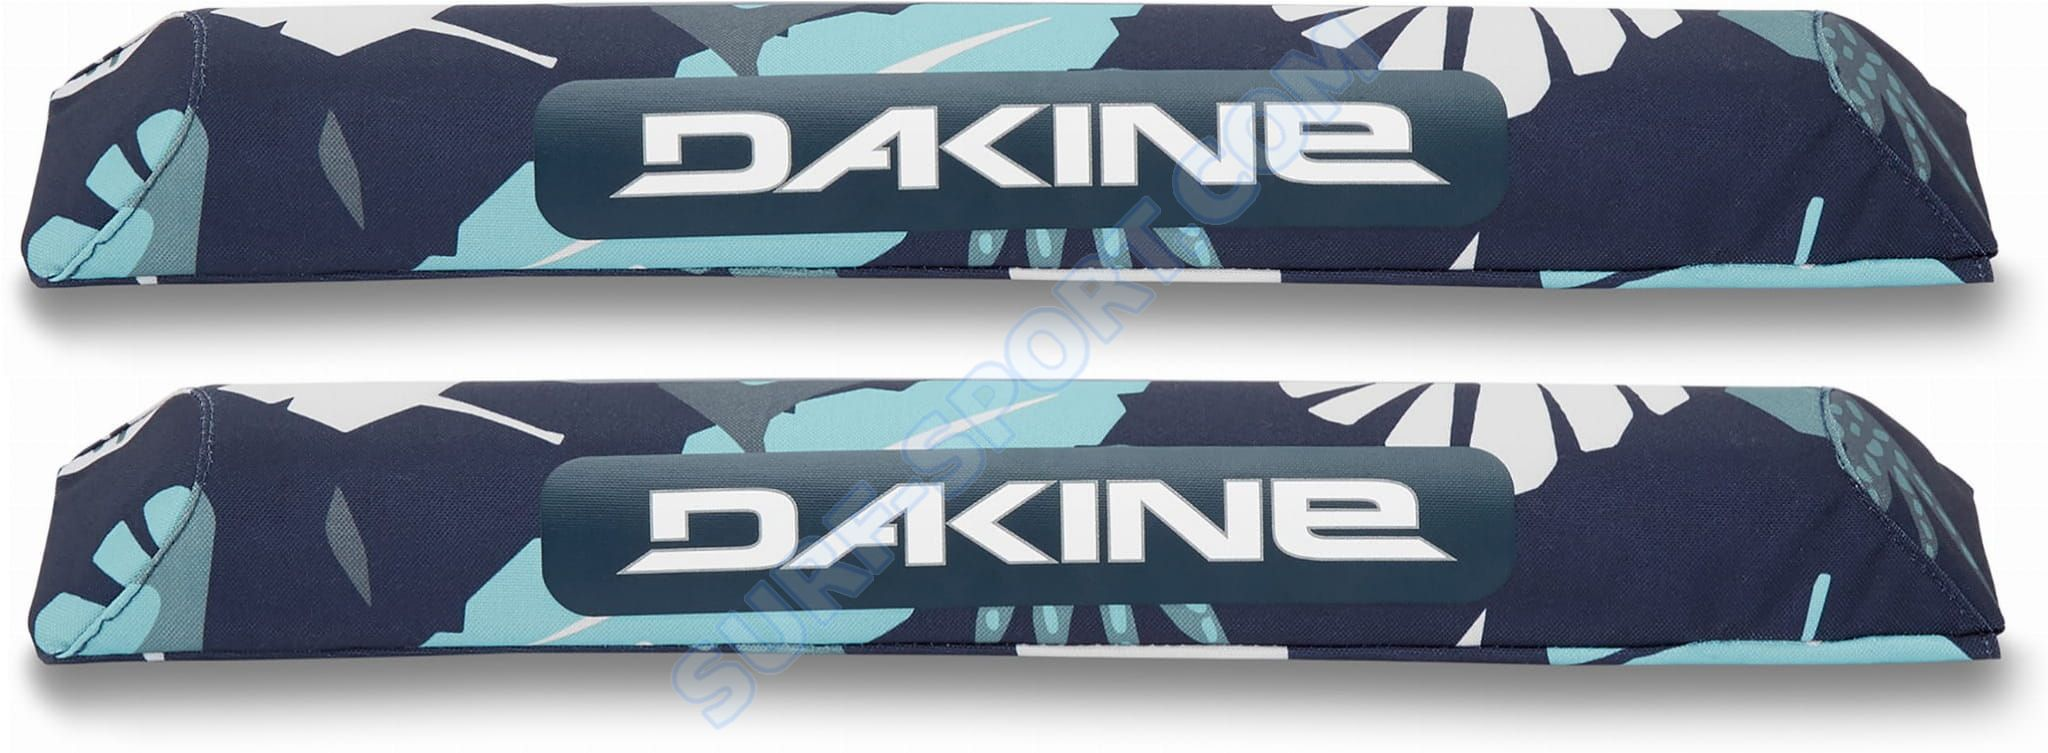 Dakine-AERORACKPADS18IN-ABSTRACTPALM-ABSTRACT.jpg